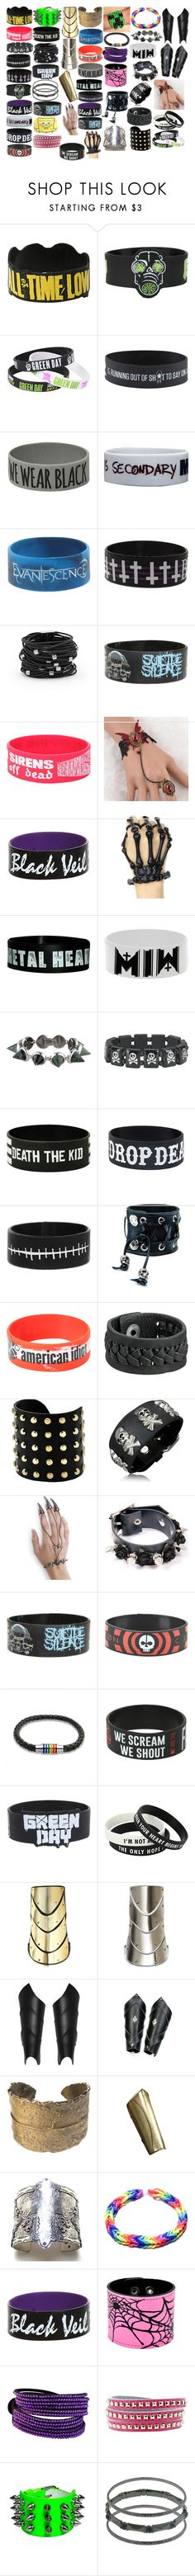 """Bracelets 15"" by spellcasters ❤ liked on Polyvore featuring Hot Topic, Coven, Chico's, Trend Cool, Eddie Borgo, Full Tilt, Funk Plus, Frye, Michael Kors and Bling Jewelry"